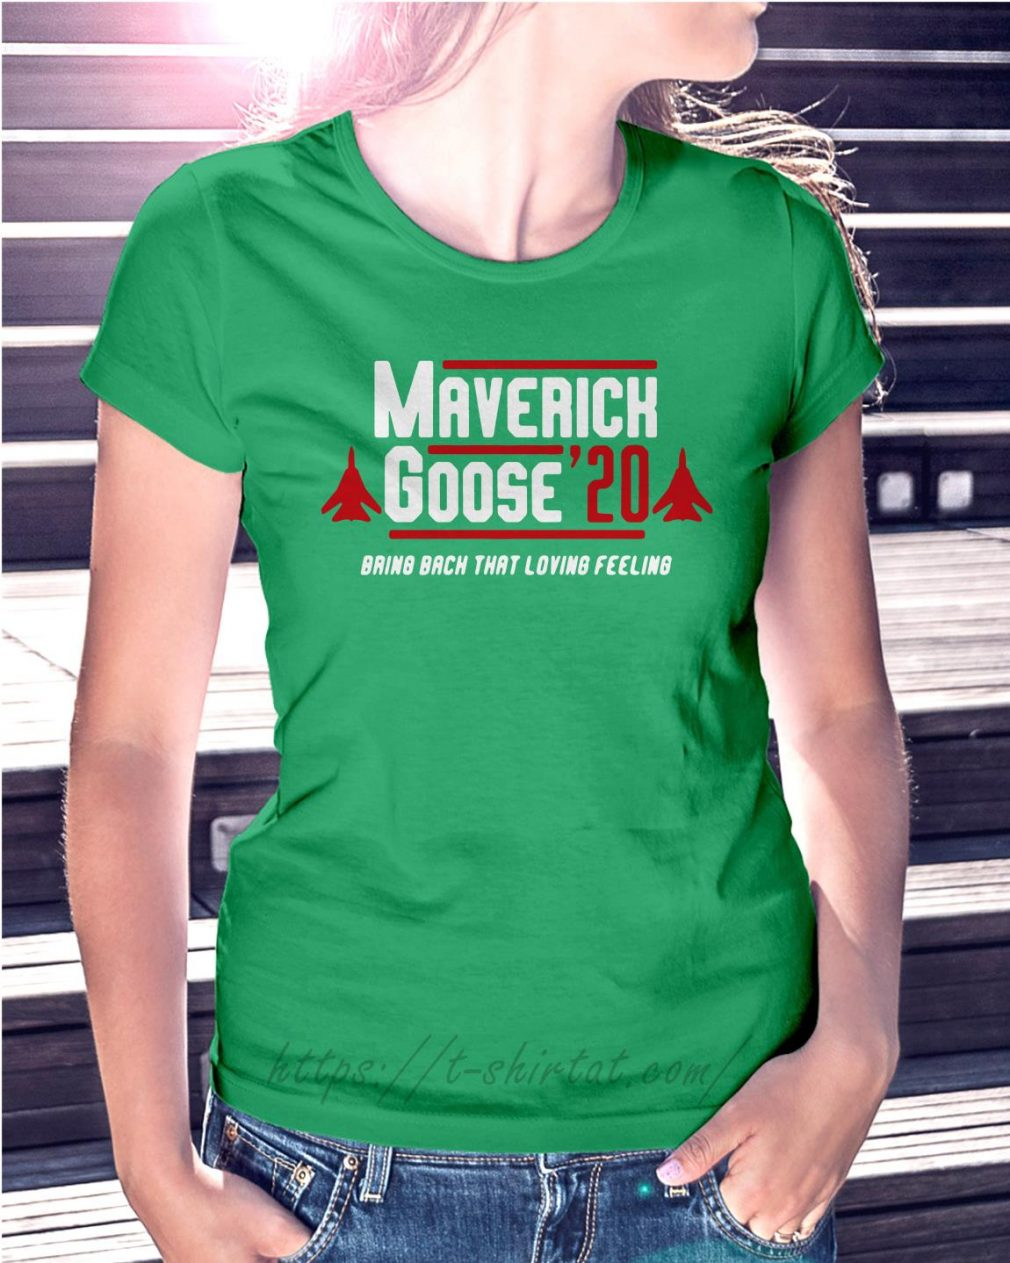 Maverick Goose' 20 bring back that loving feeling Ladies Tee green